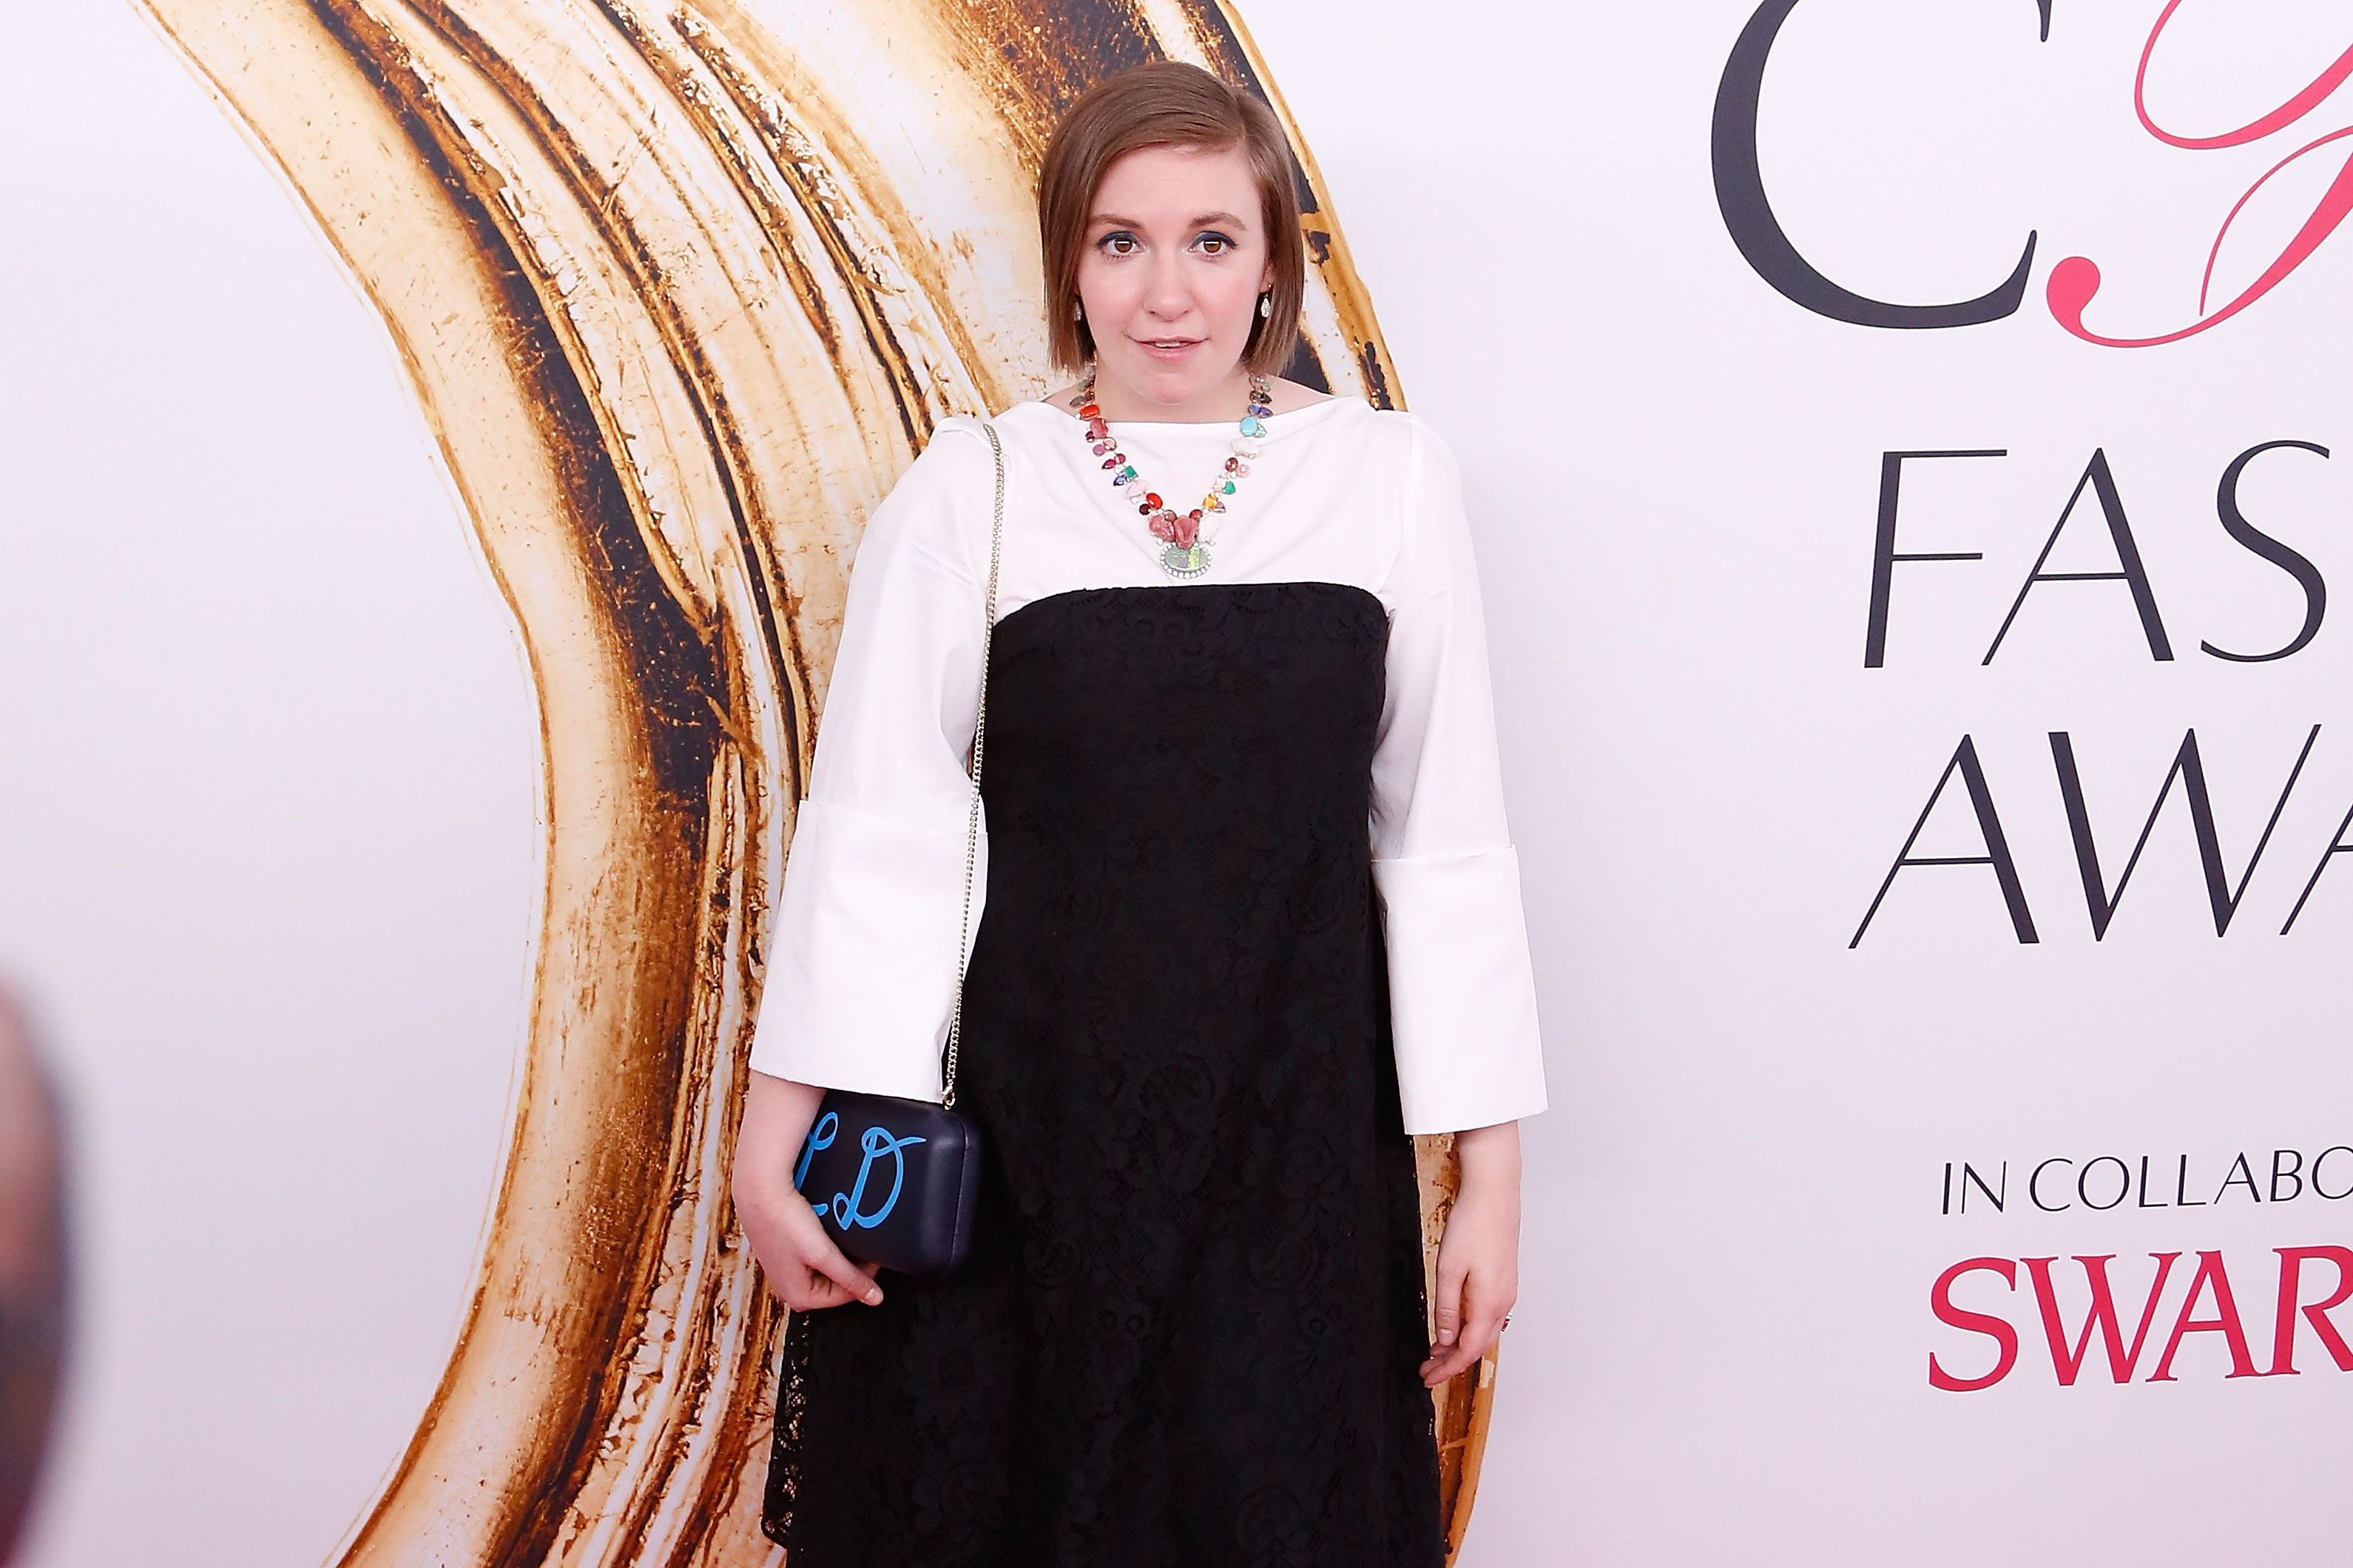 Lena Dunham attends the 2016 CFDA Fashion Awards at the Hammerstein Ballroom on June 6, 2016 in New York